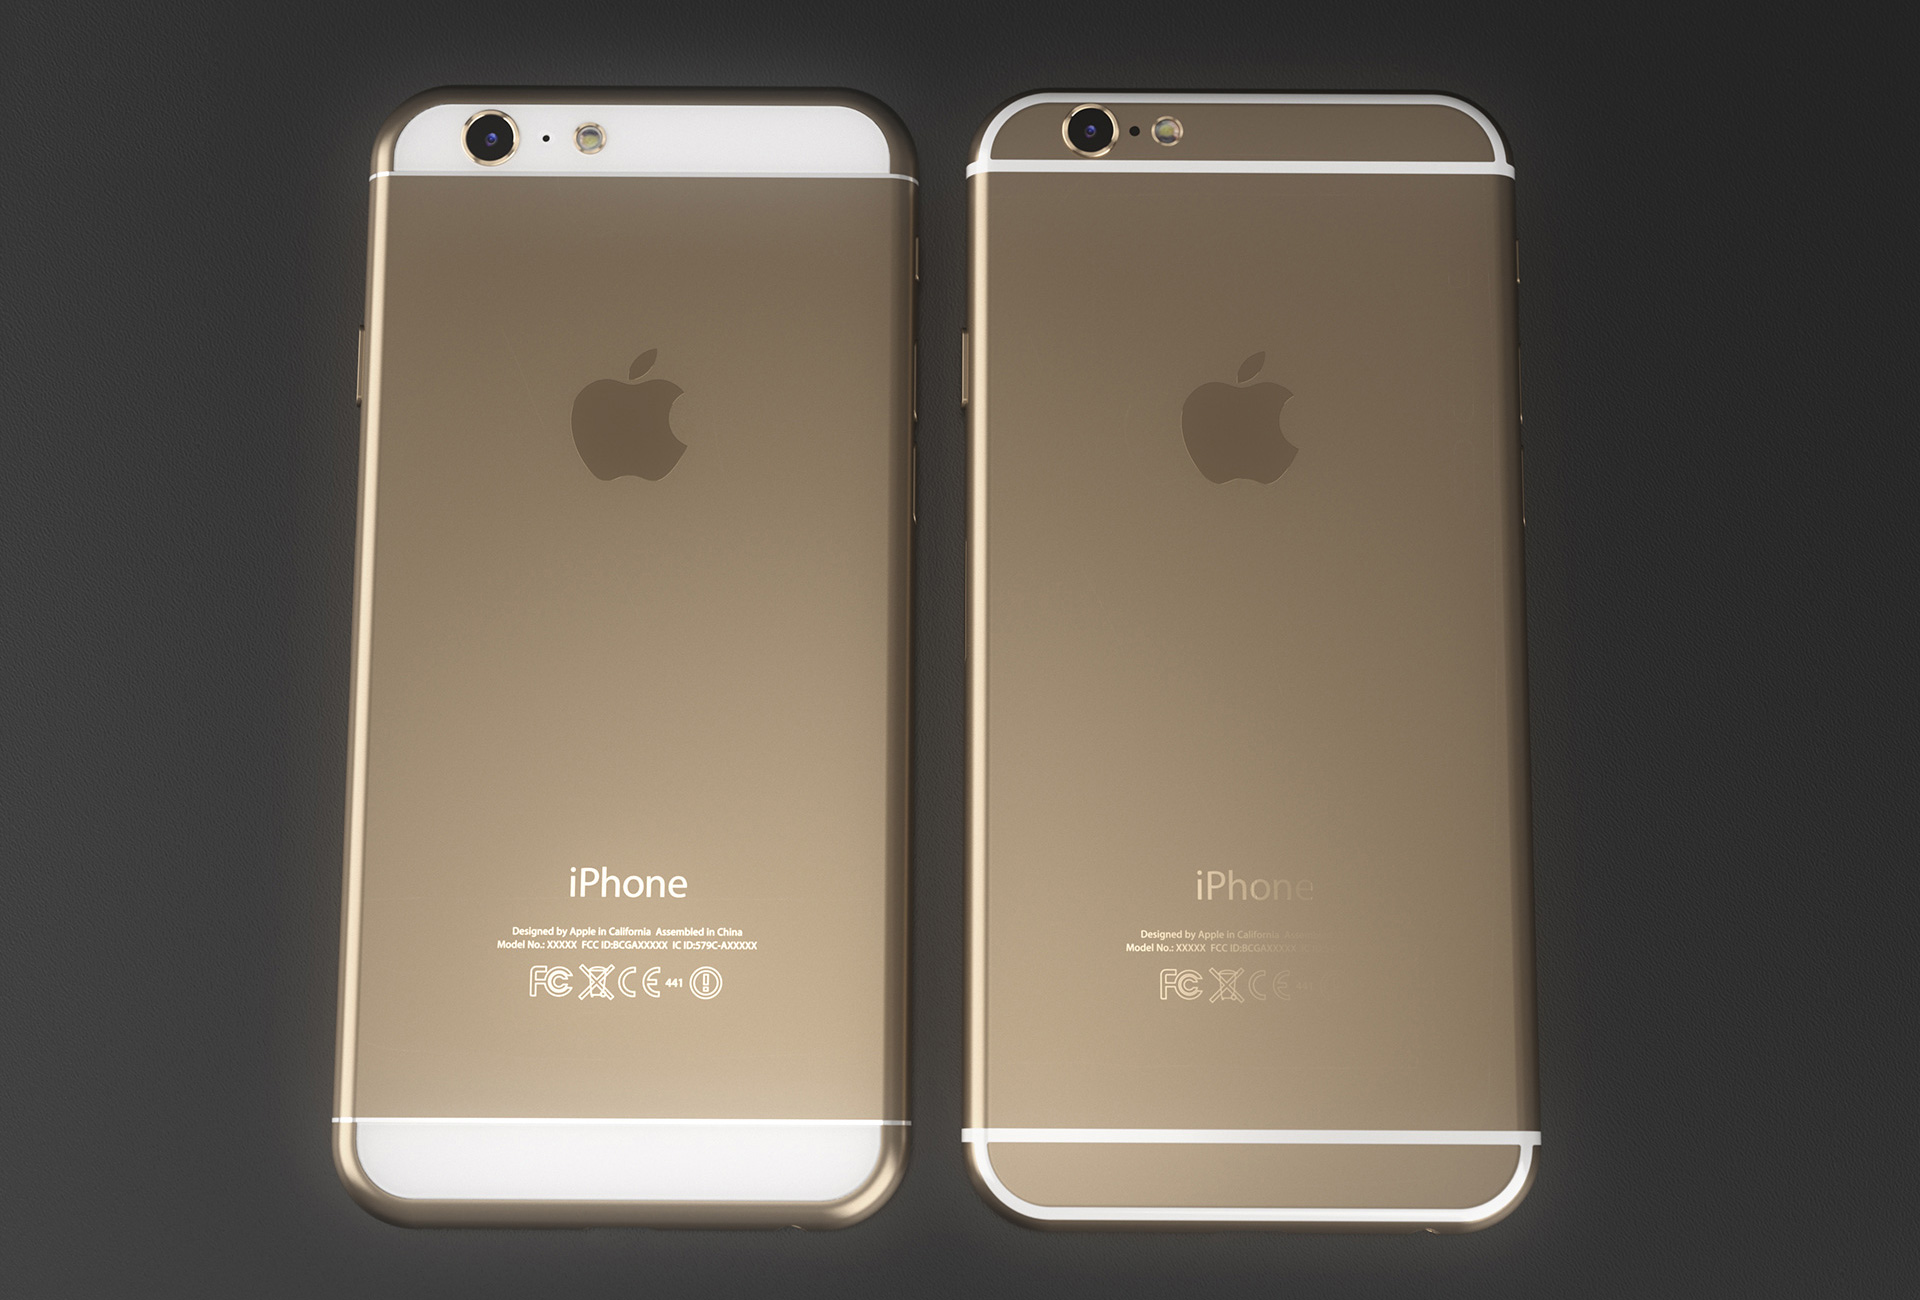 apple releasing 2 iphone 6 models on 9th september new images features. Black Bedroom Furniture Sets. Home Design Ideas